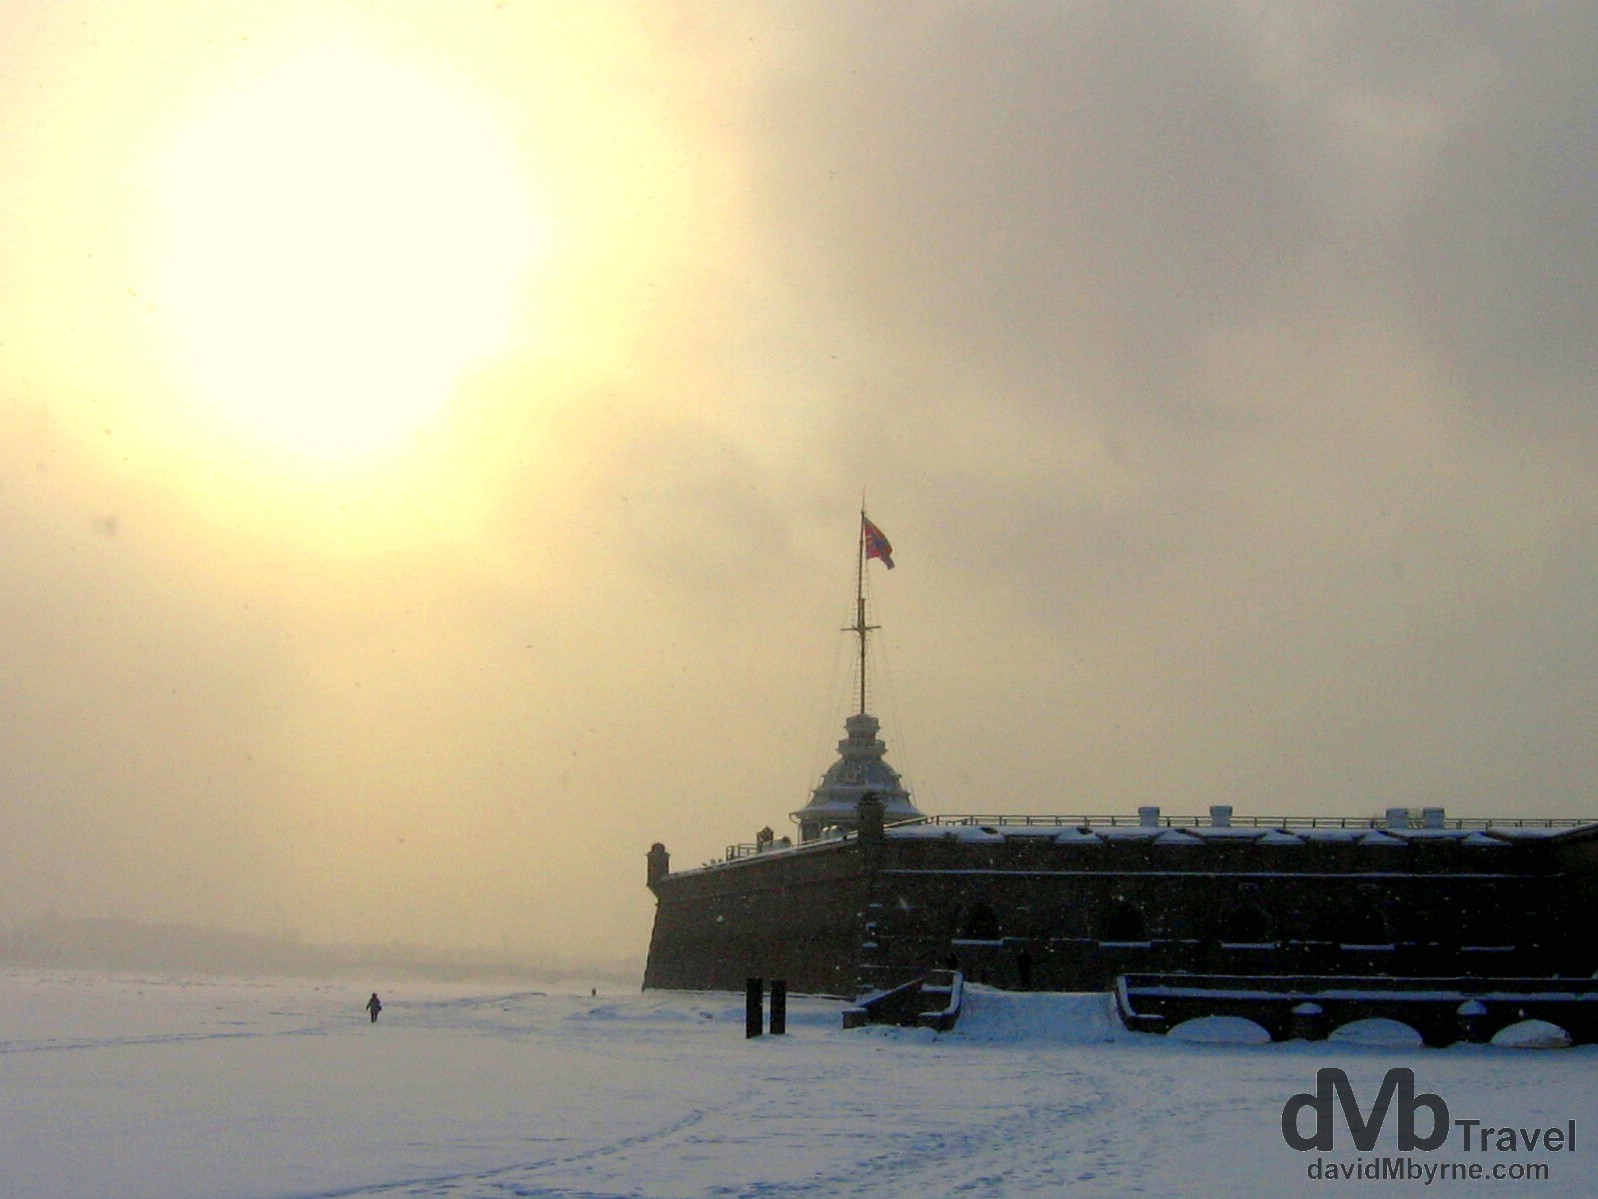 A snow blizzard outside the walls of the Peter & Paul Fortress in St. Petersburg, Russia. February 28, 2006.